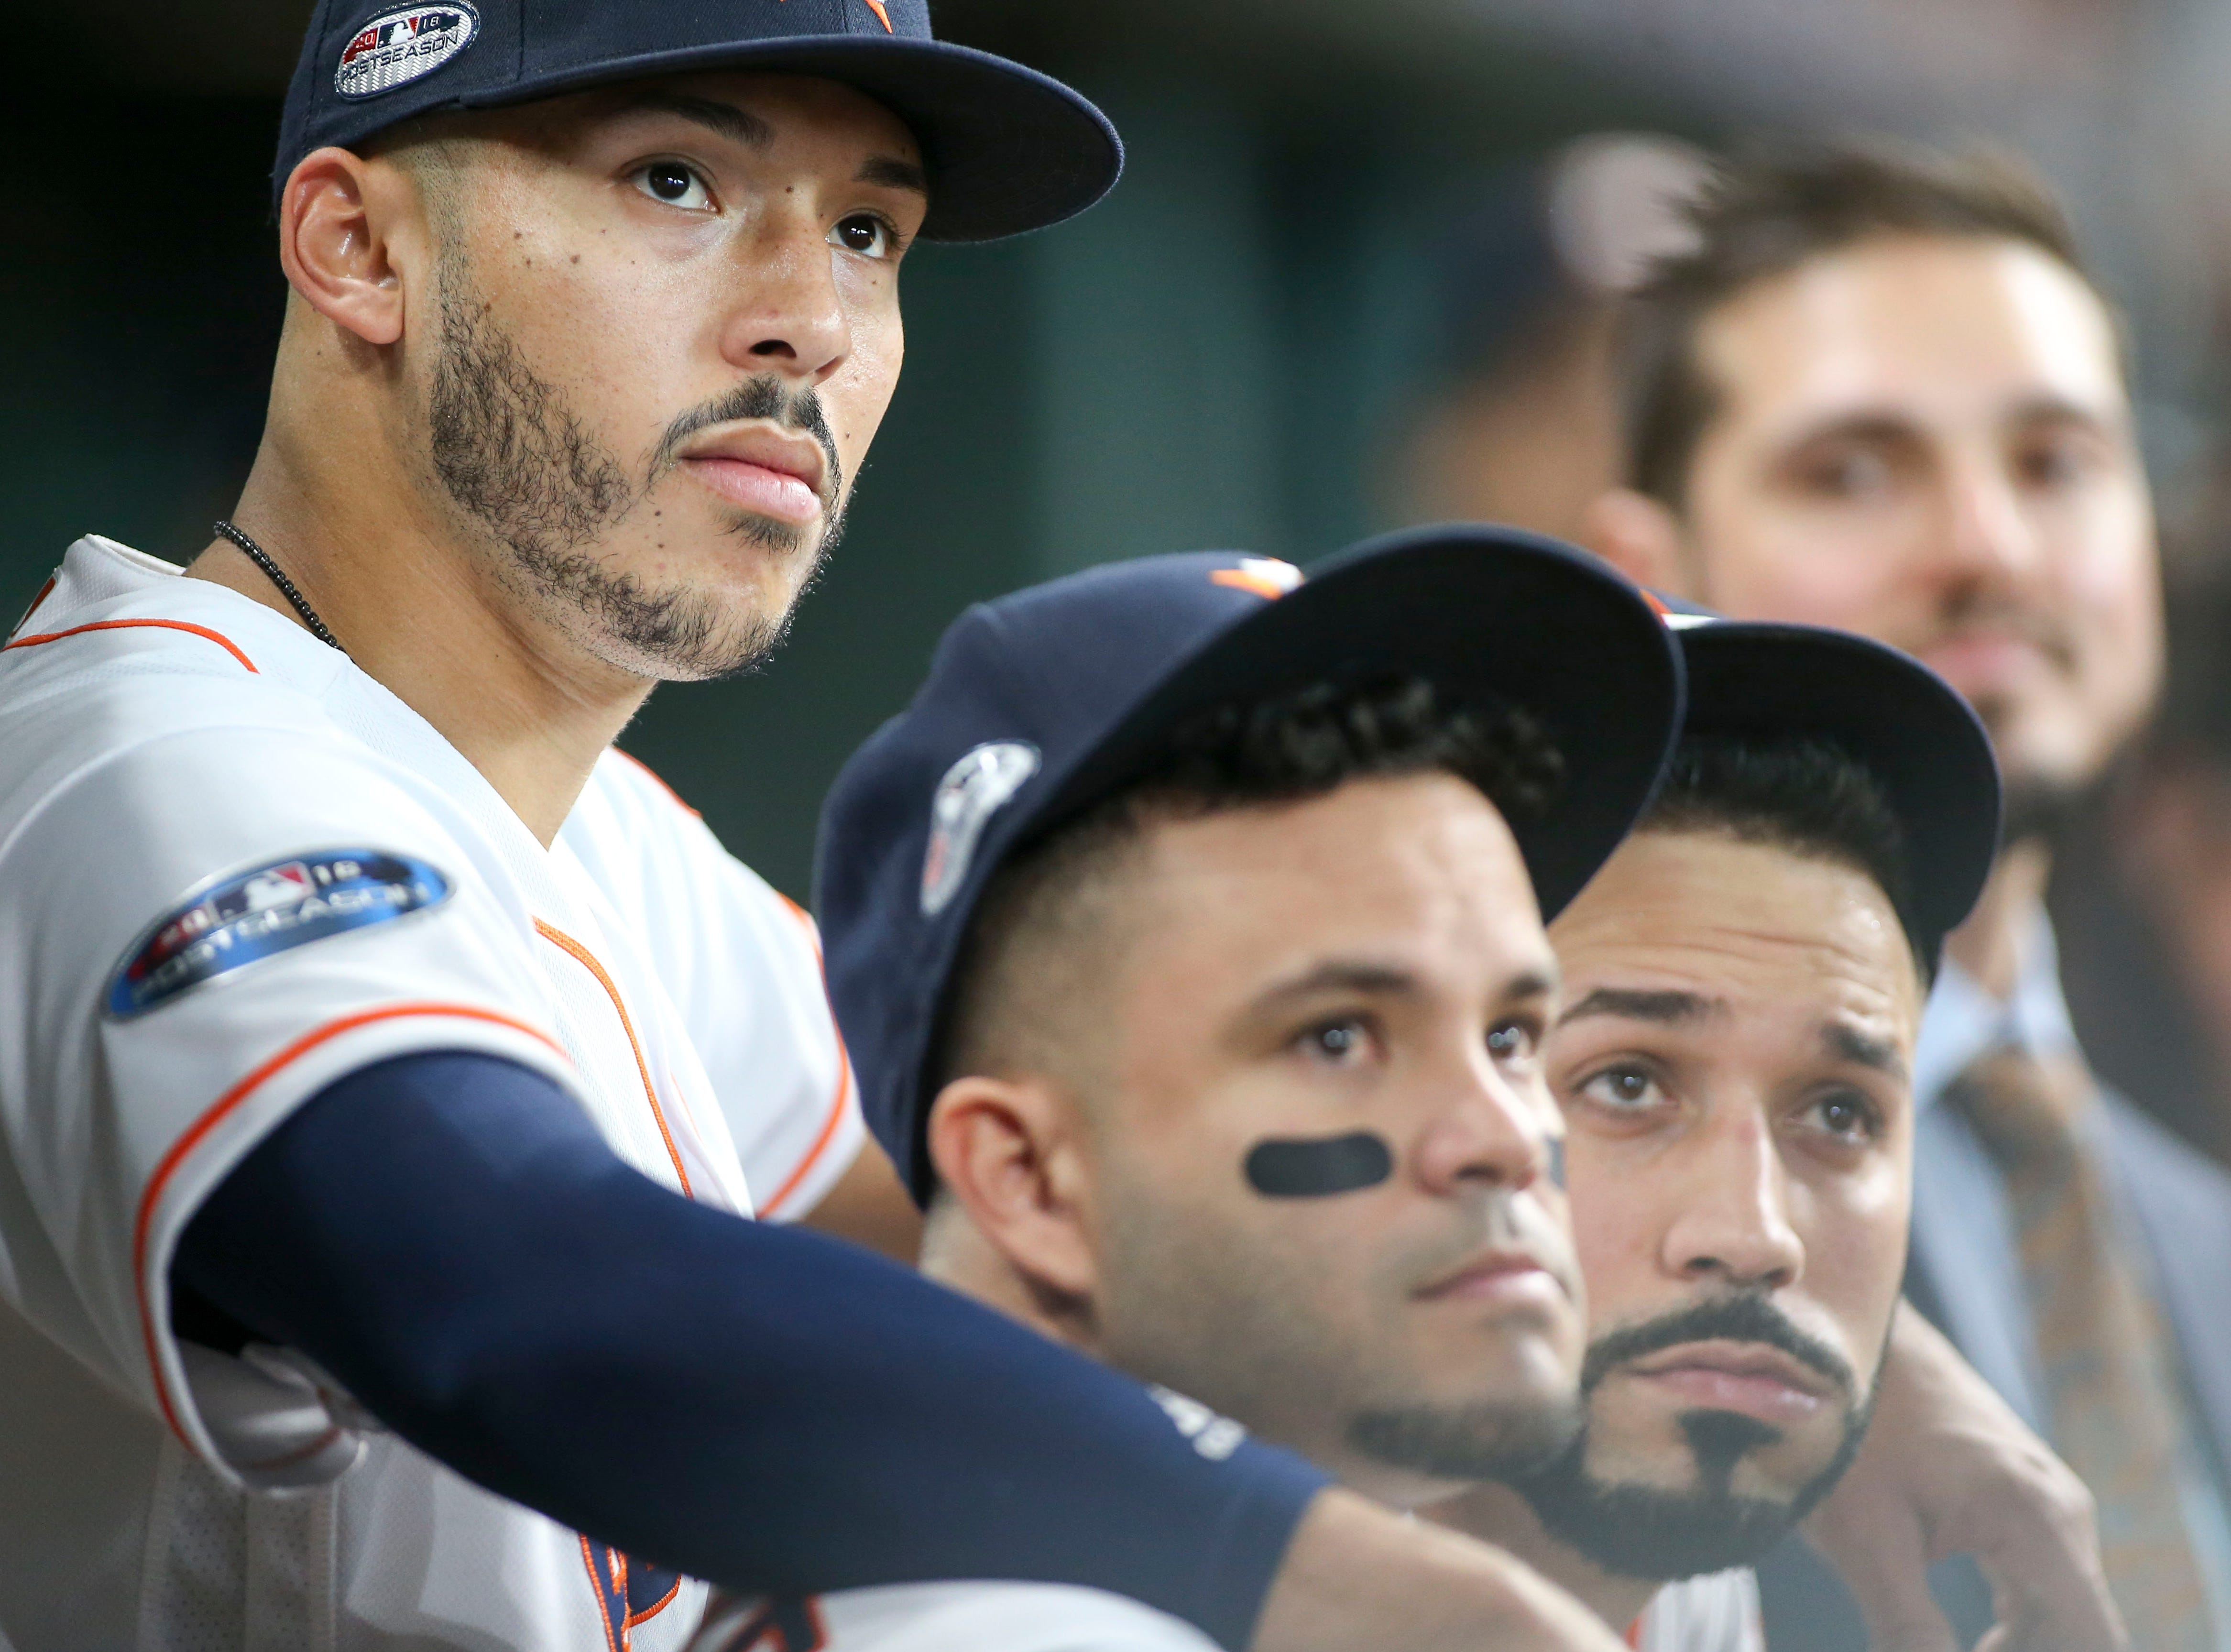 ALDS Game 1: Astros shortstop Carlos Correa with Jose Altuve and Marwin Gonzalez before the game.